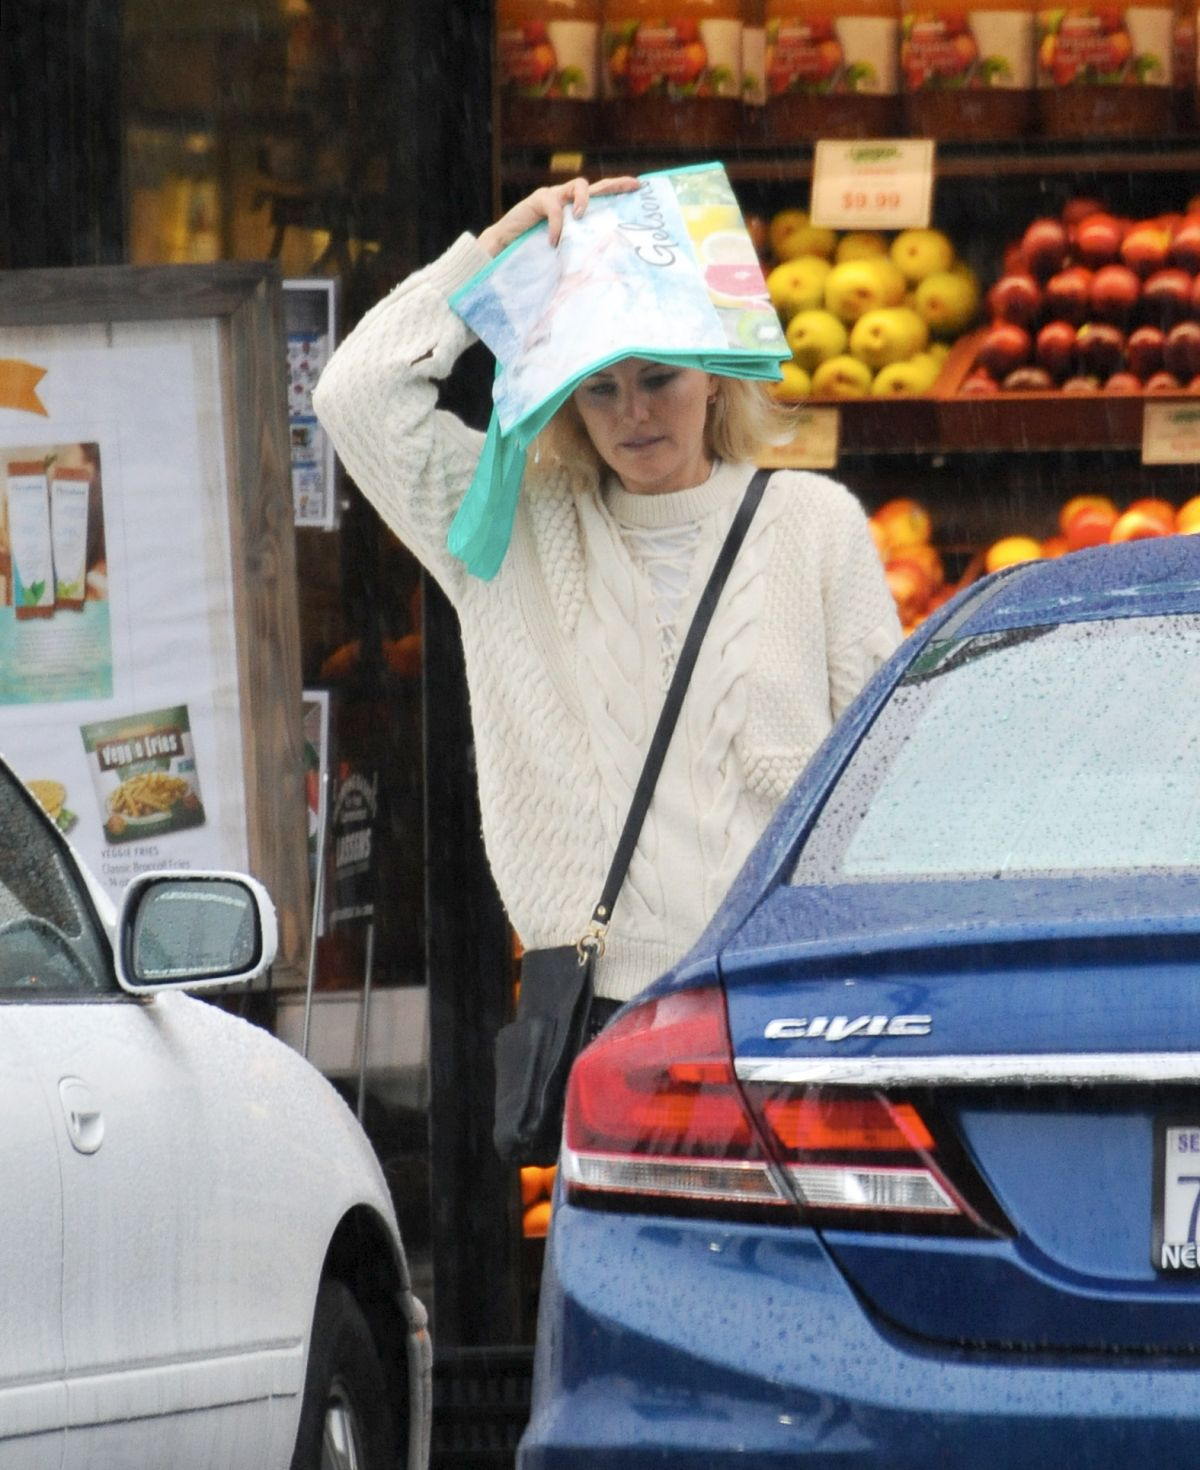 Grocery Stores Los Angeles: MALIN AKERMAN Shopping At Lassen's Grocery Store In Los